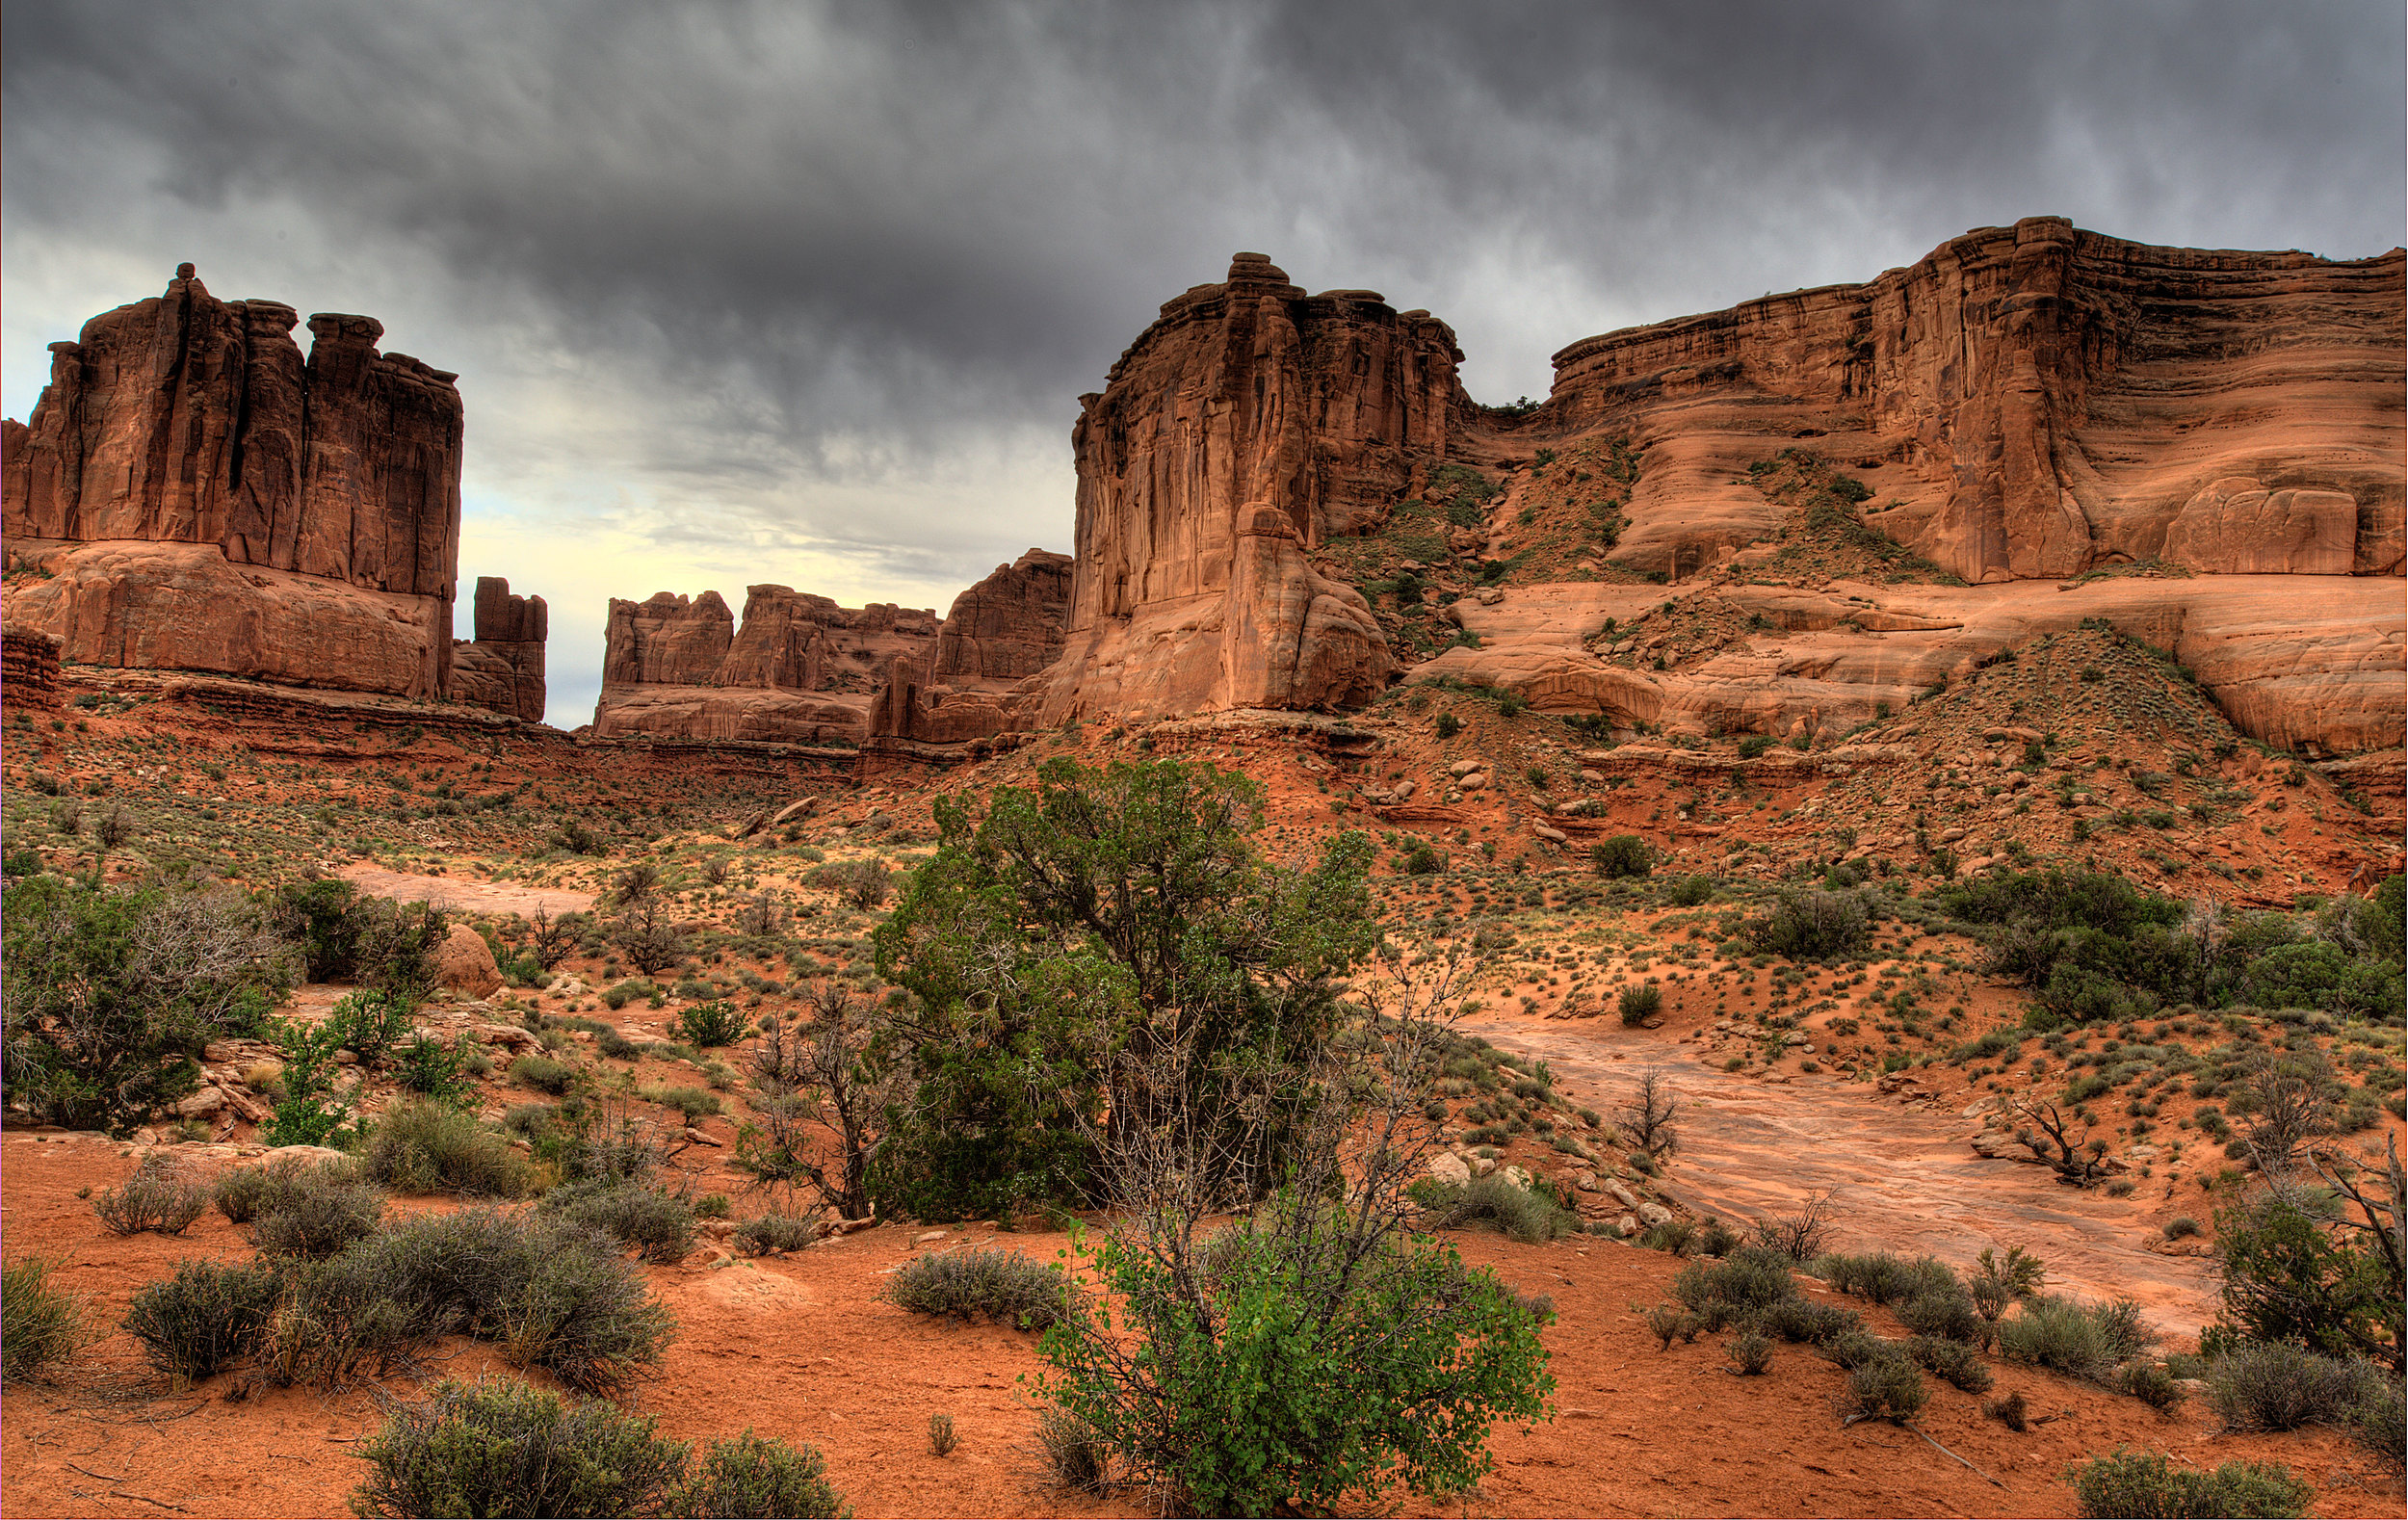 090610_0044_39_40_41_42_43-Wall-Street-overlook-at-Arches.jpg